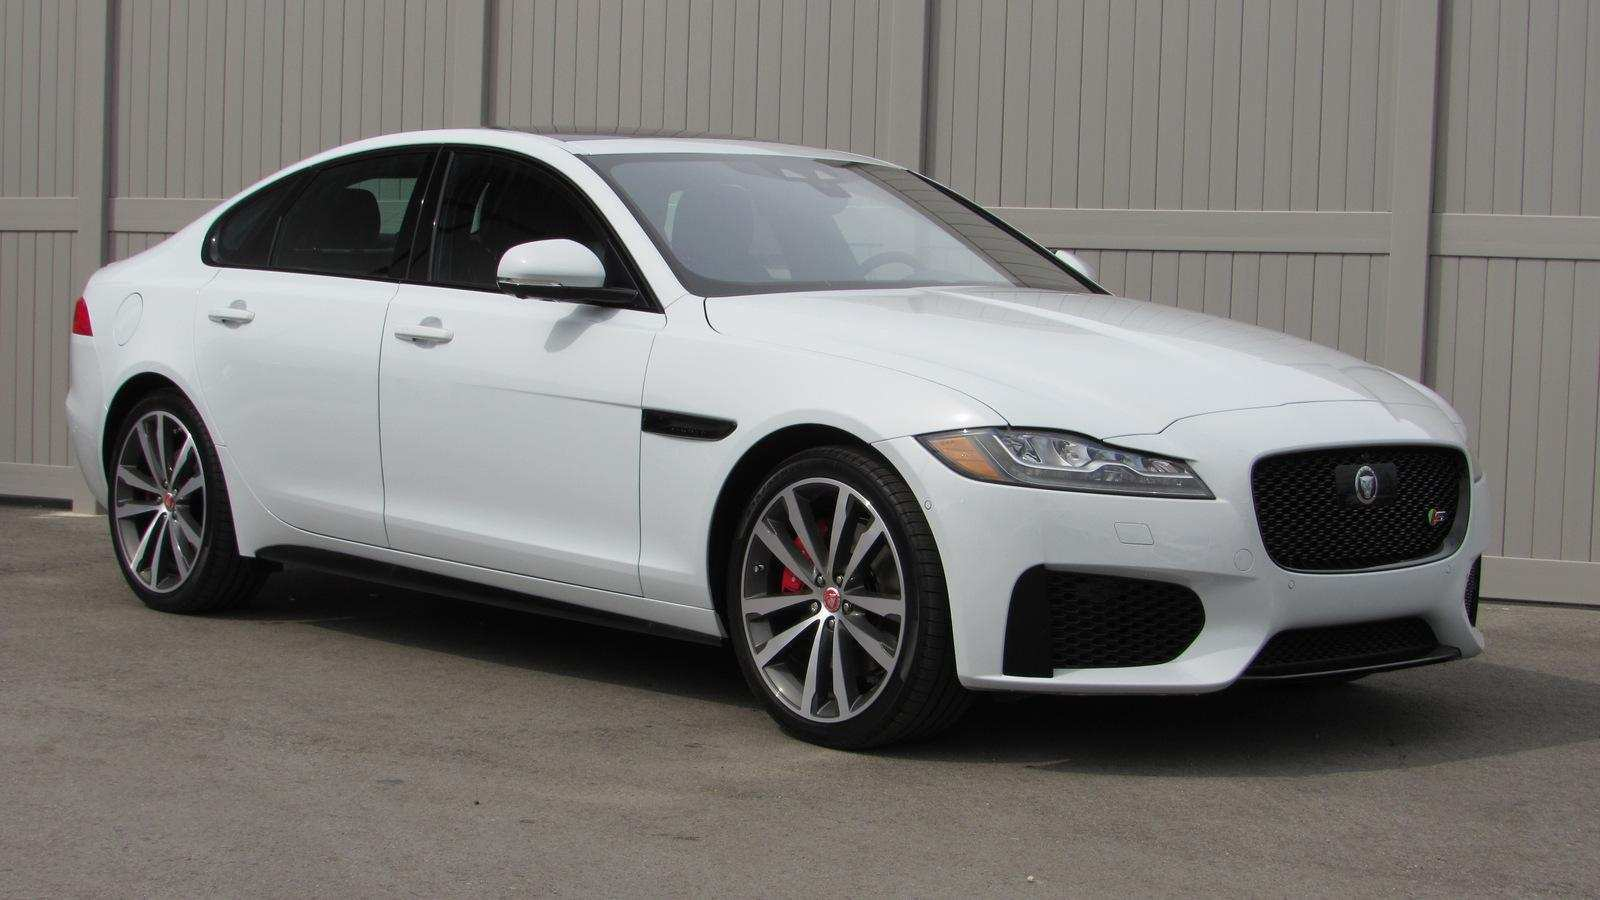 84 The Best 2019 Jaguar XF Images